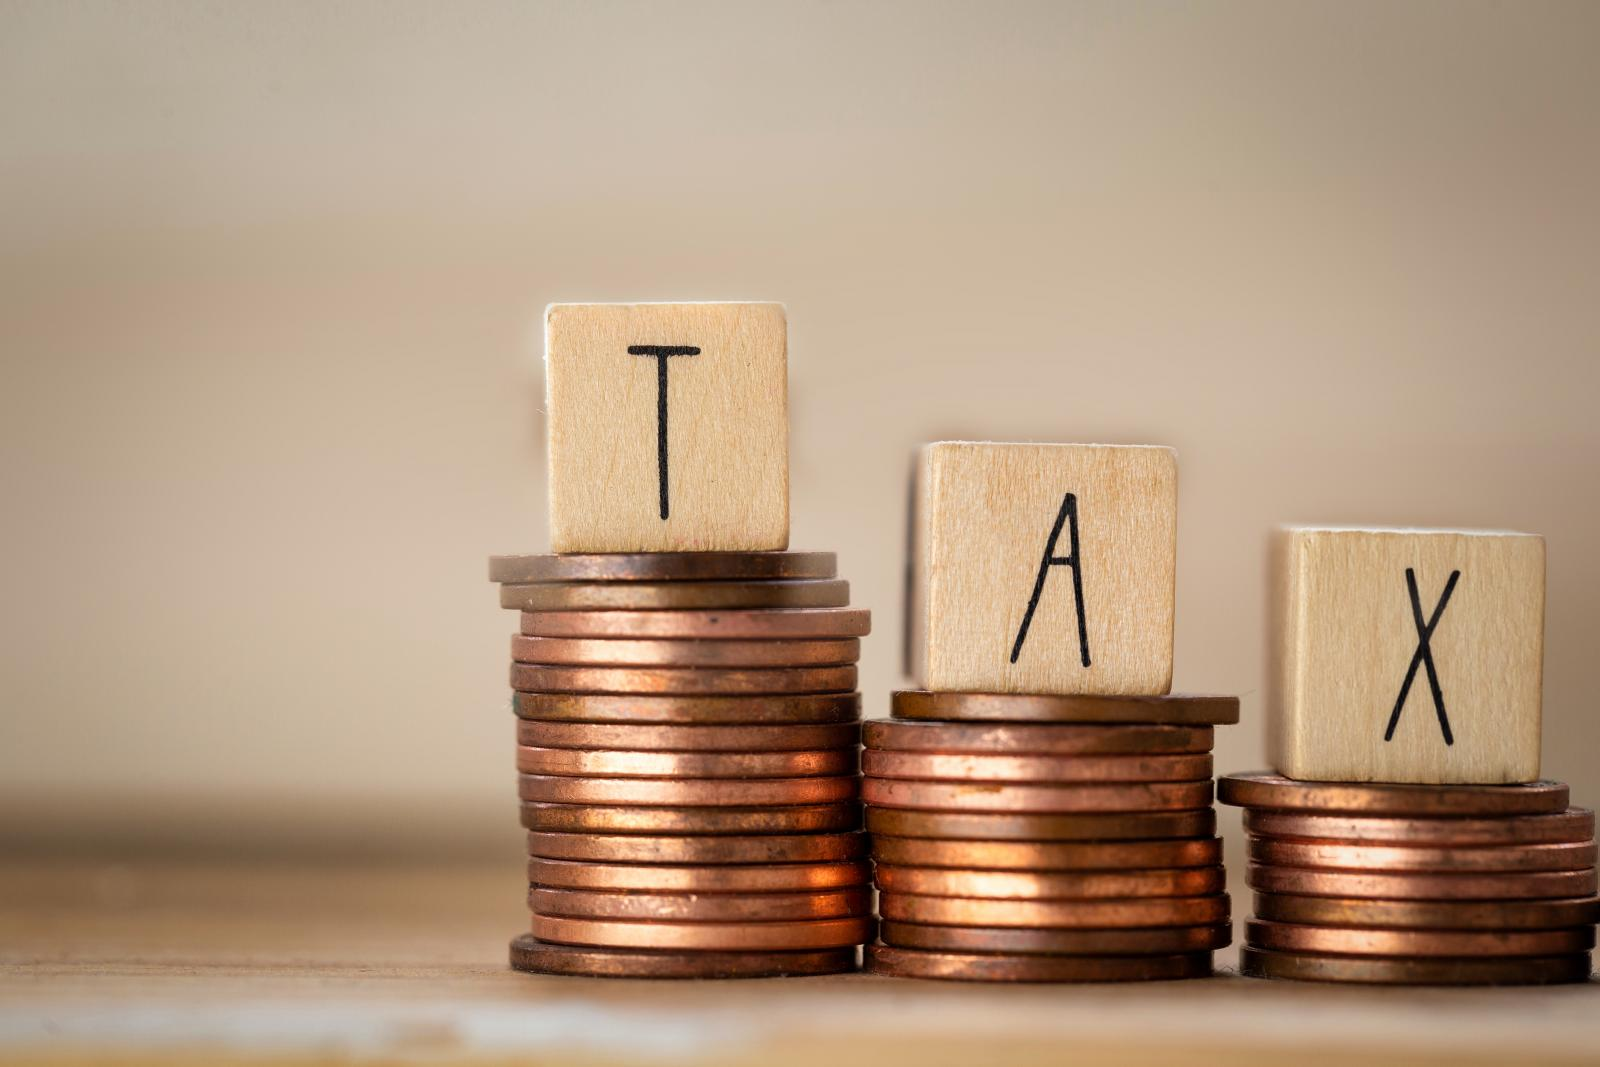 Capital Gains Tax - agents back extended time limit, with qualifications